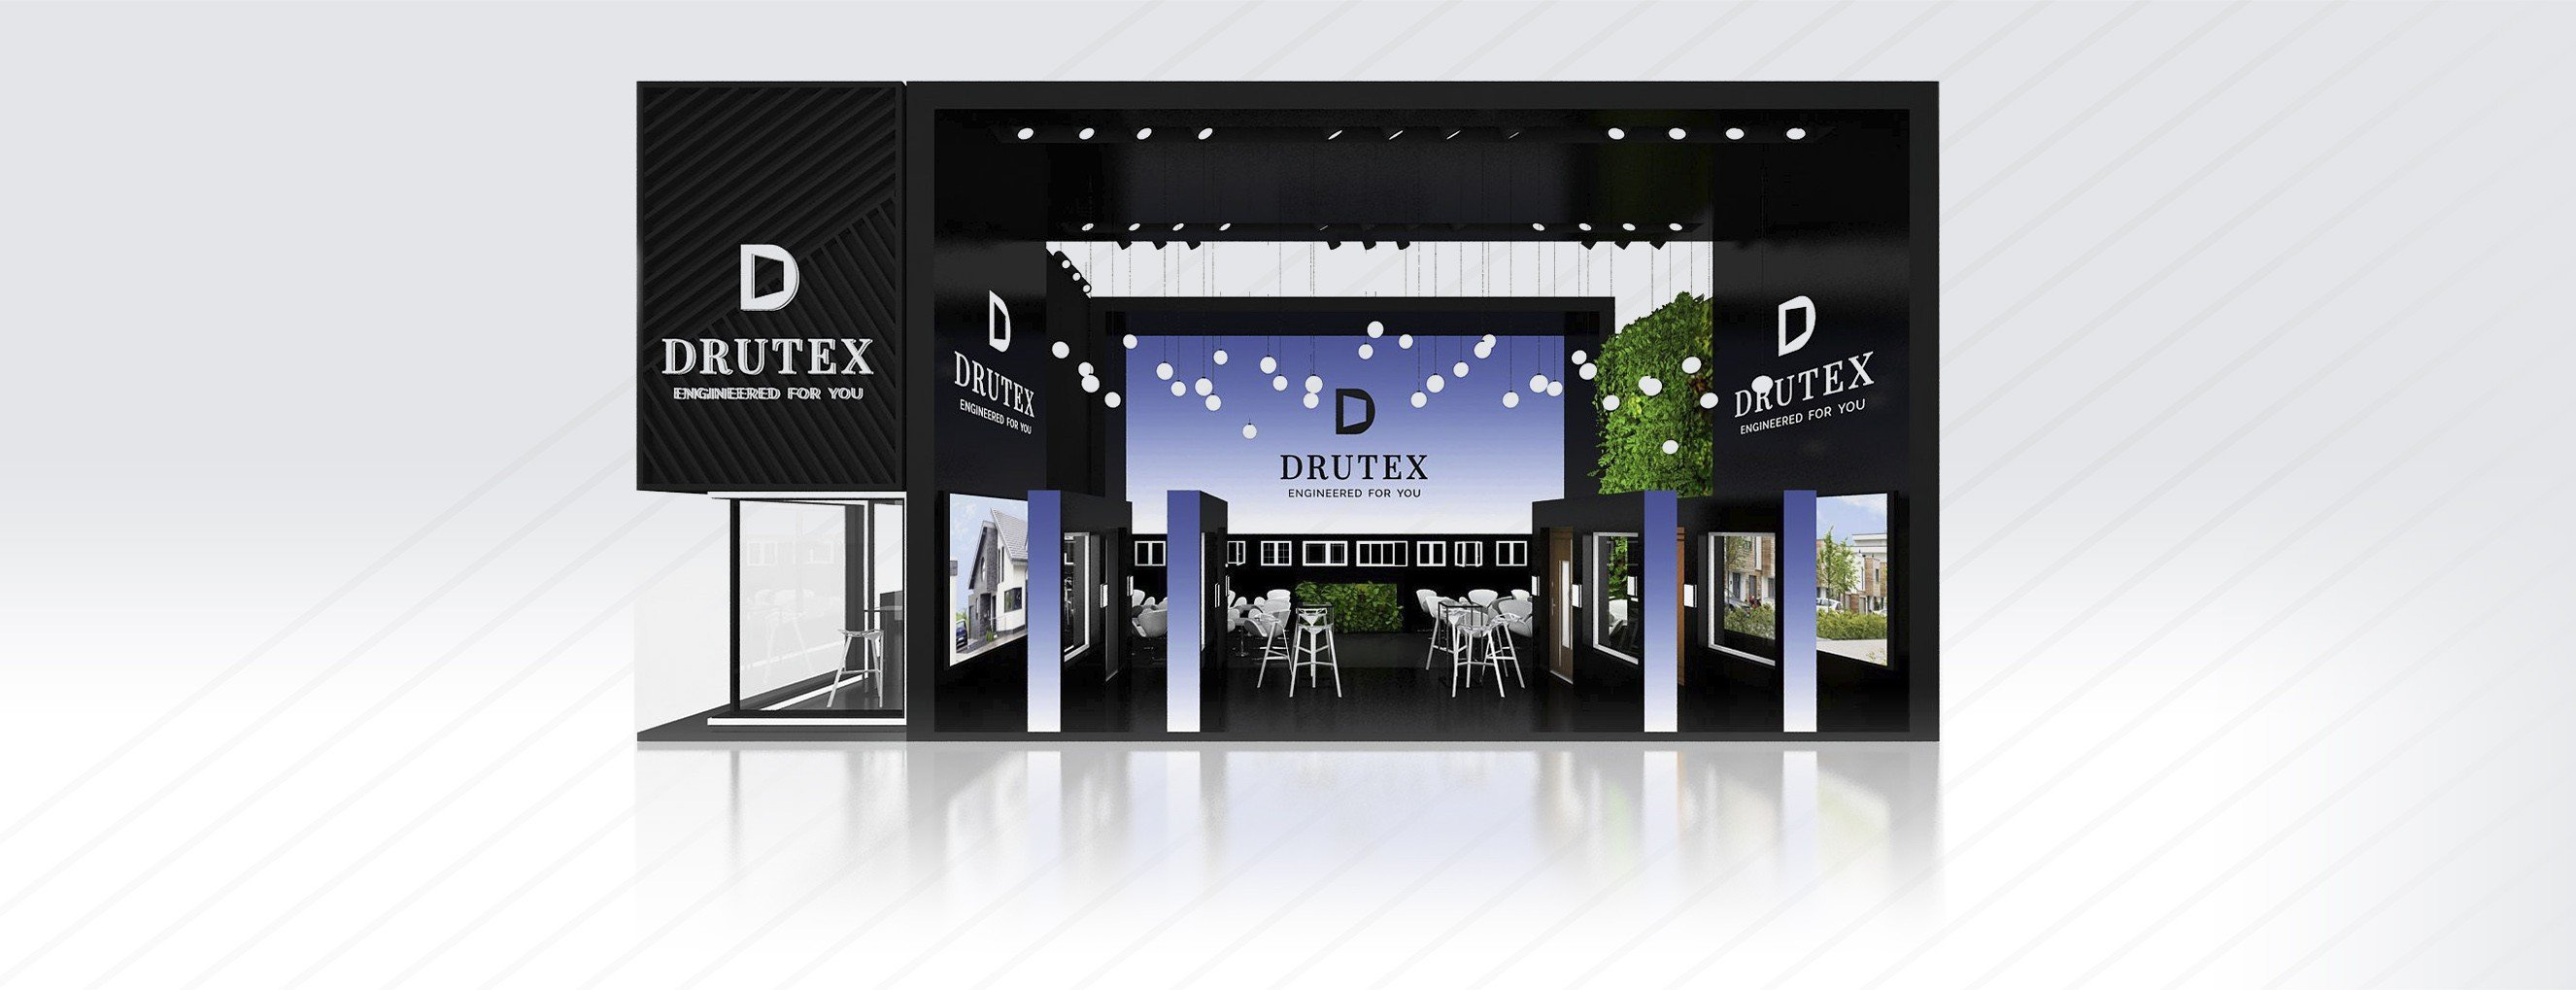 New Drutex products at the Munich trade fair.